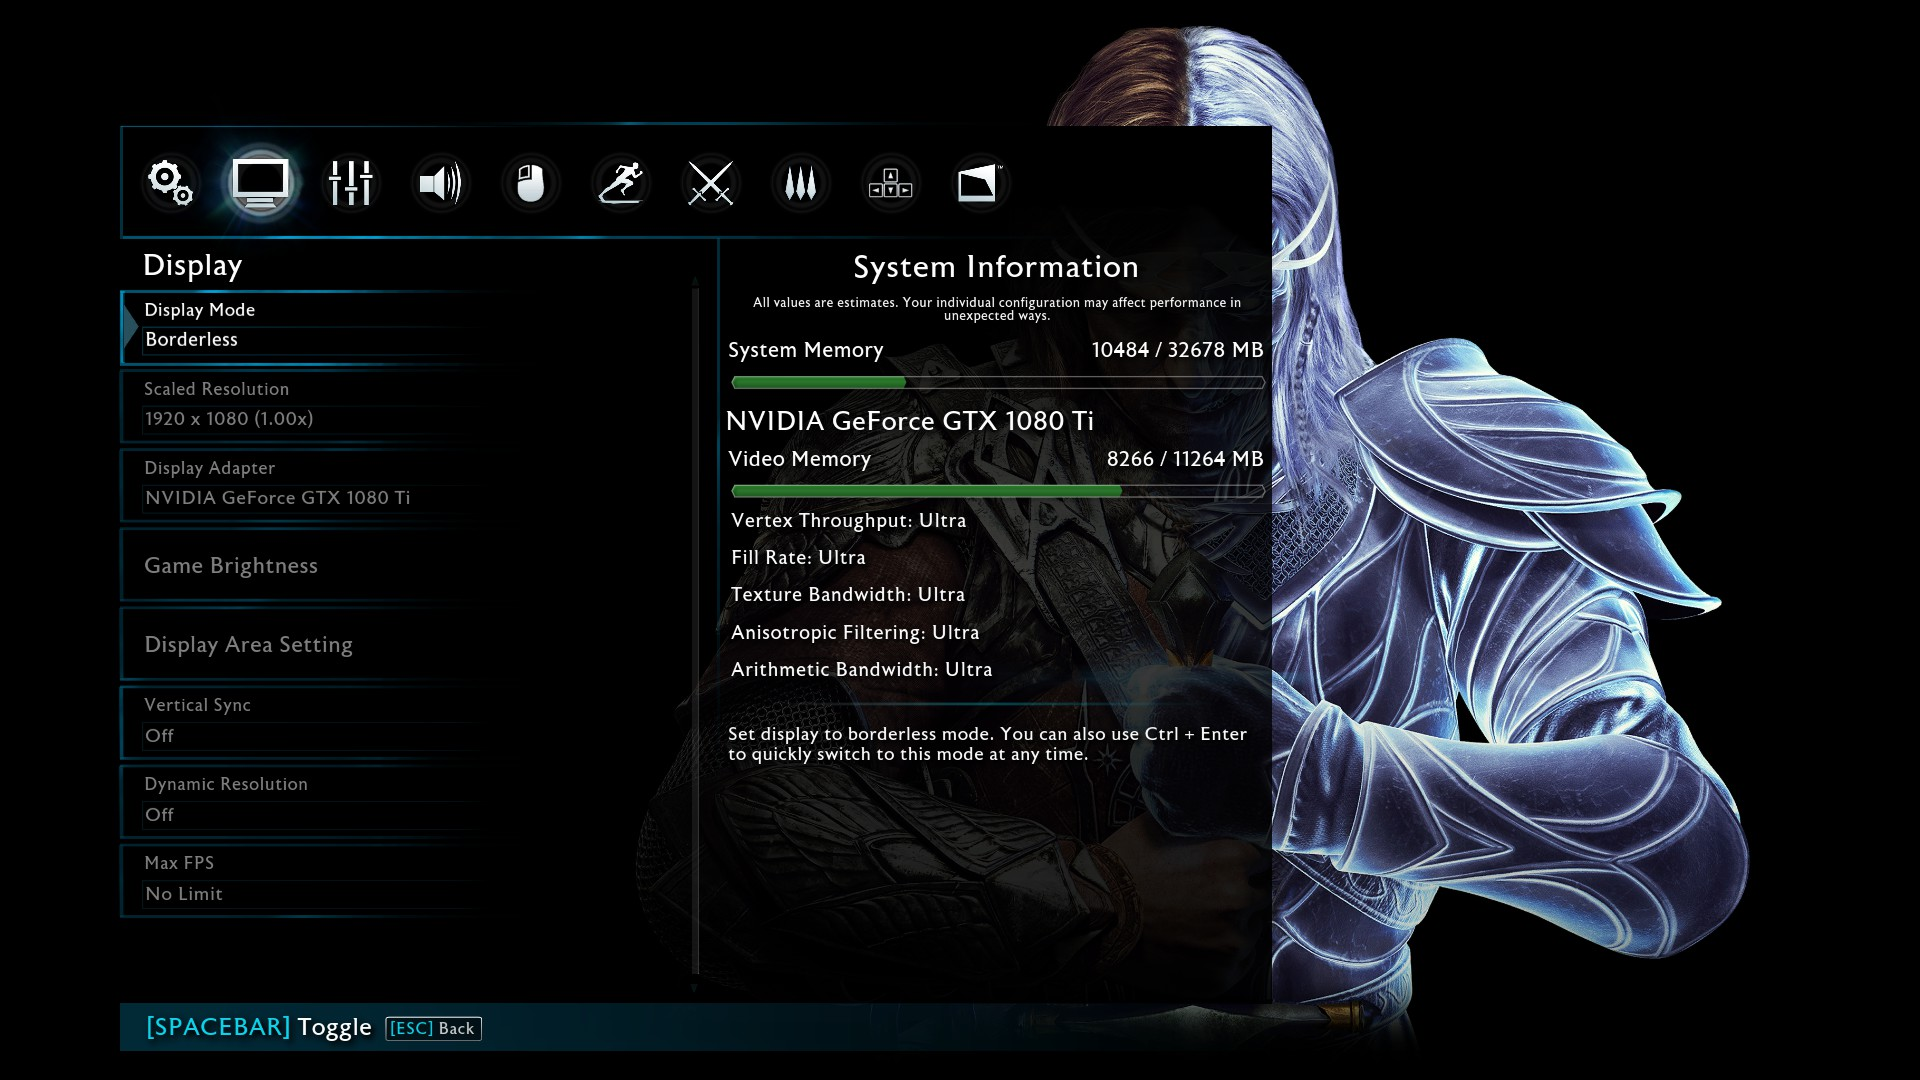 How To Limit Fps